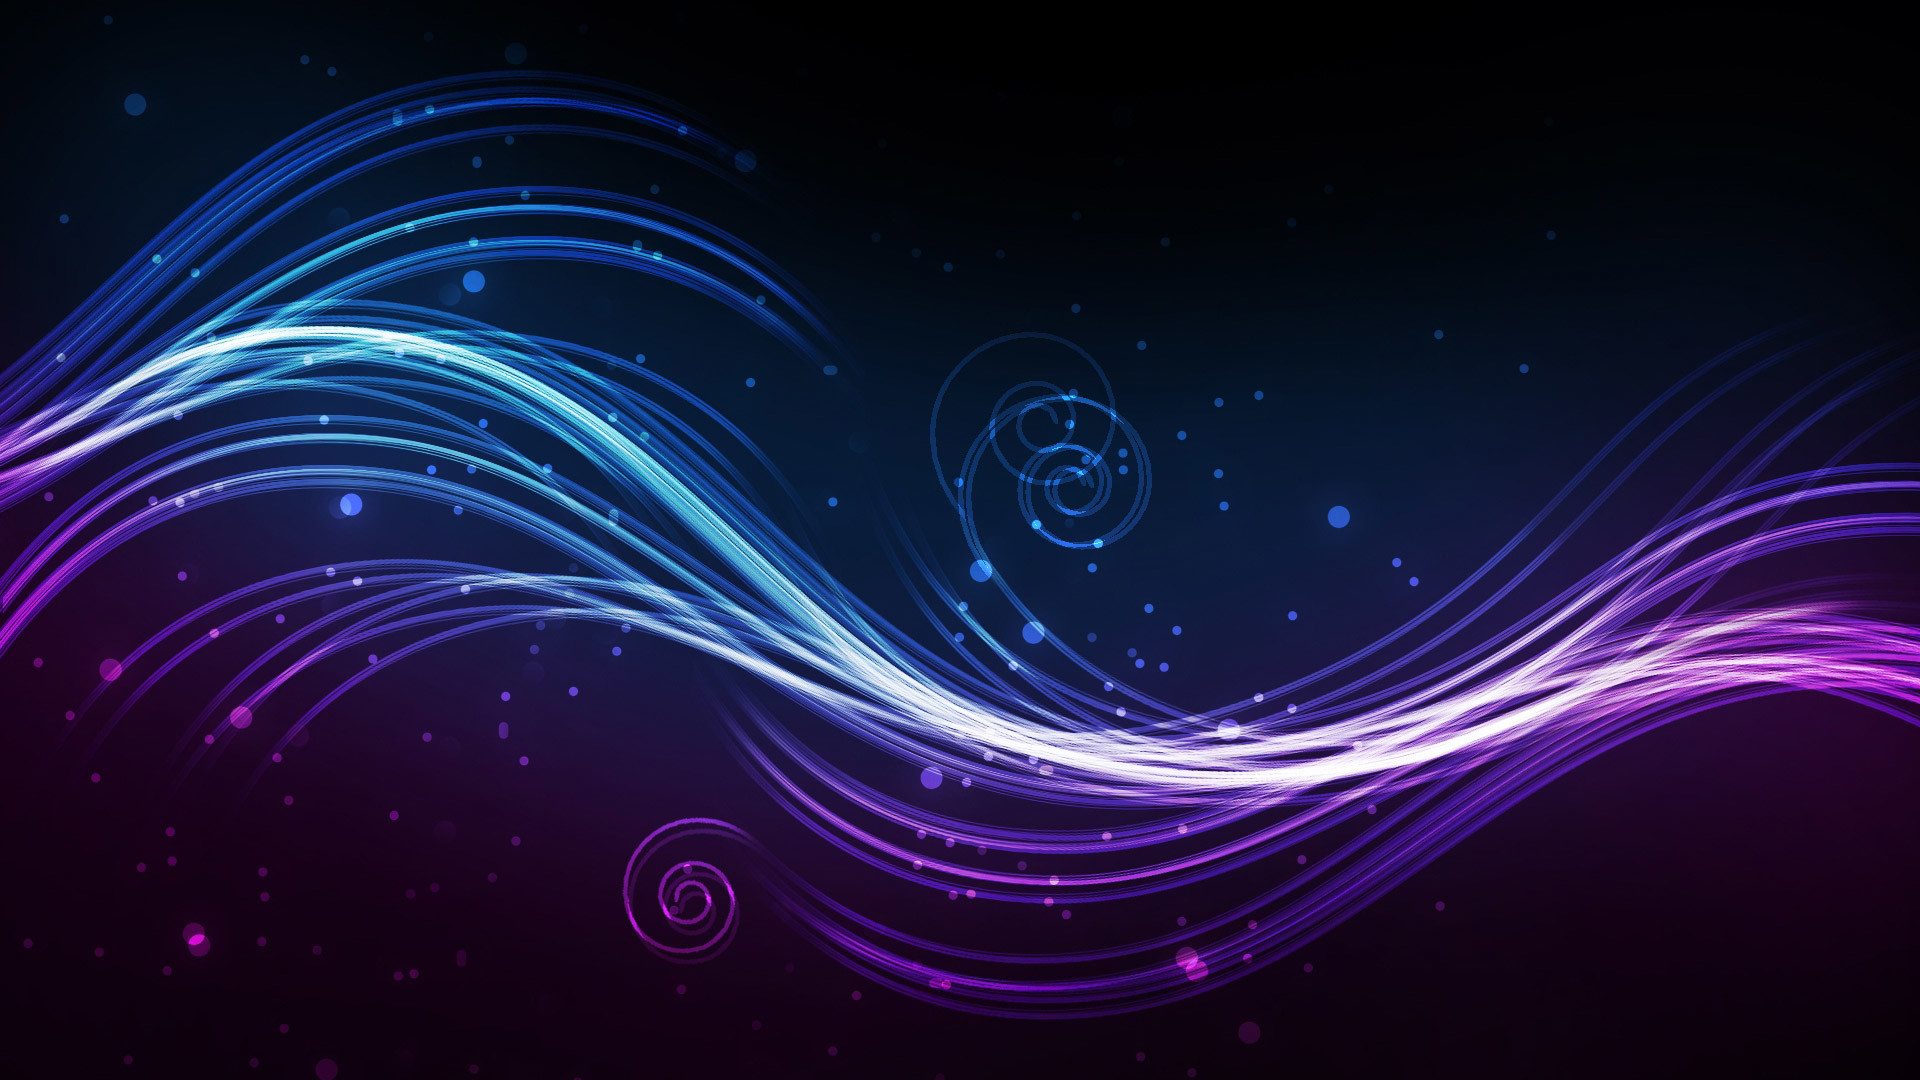 … tablet backgrounds; 1080p hd wallpapers …